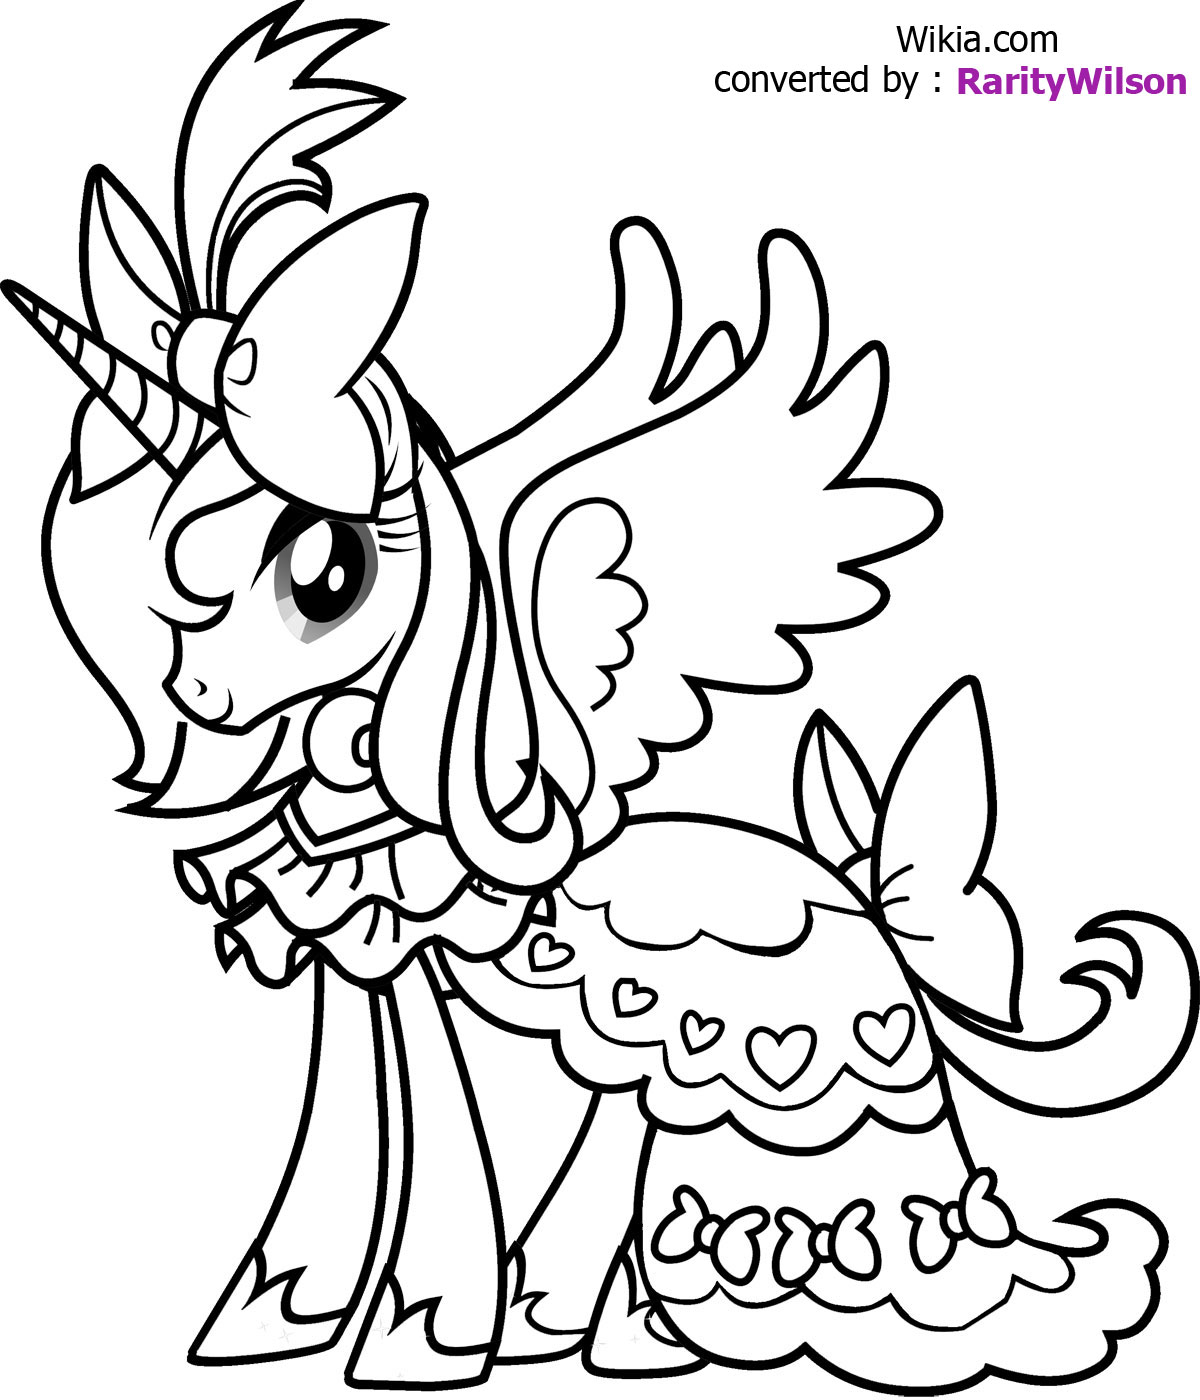 unicorn coloring pages Only Coloring